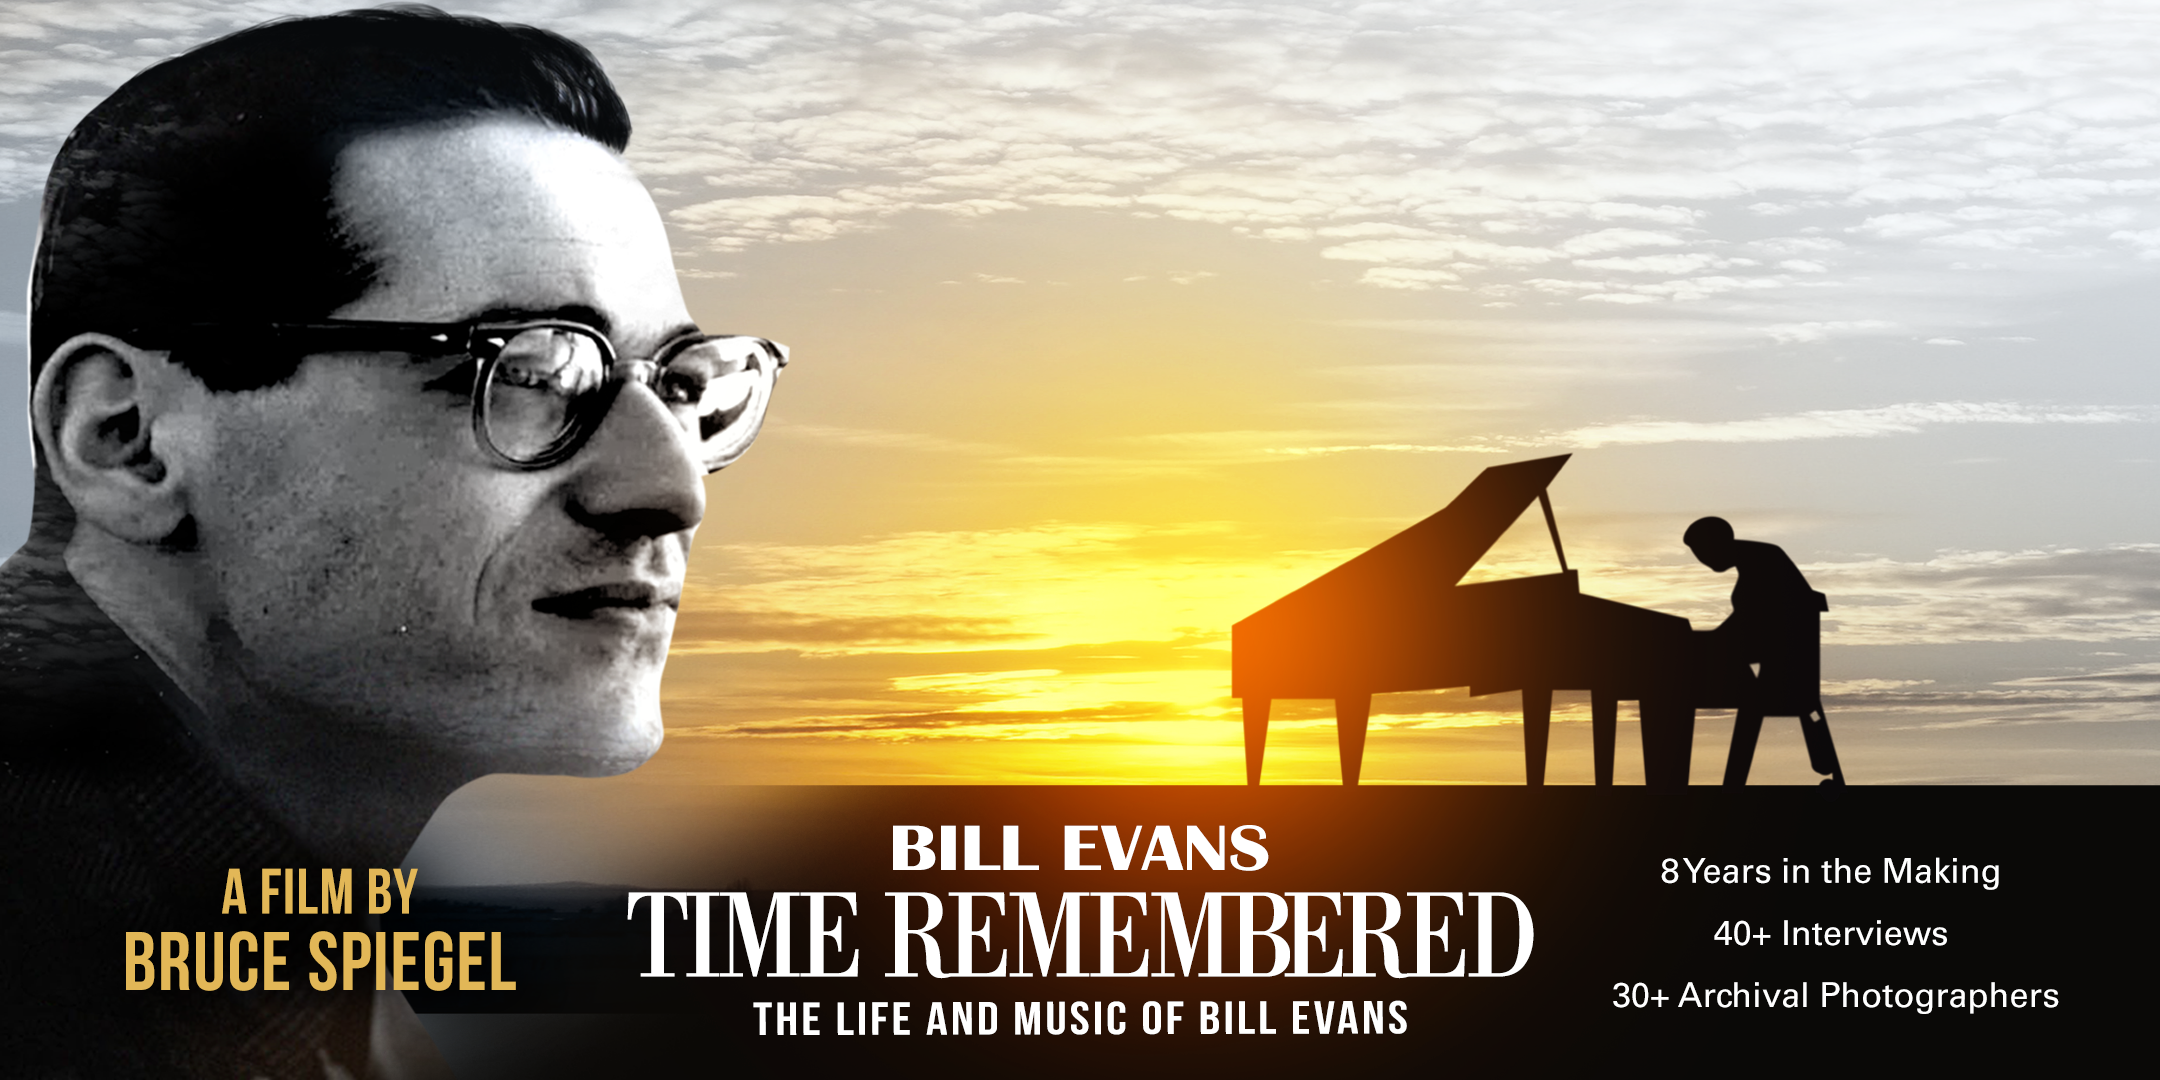 「Bill Evans Time Remembered DVD - Life And Music Of Bill Evans」の画像検索結果